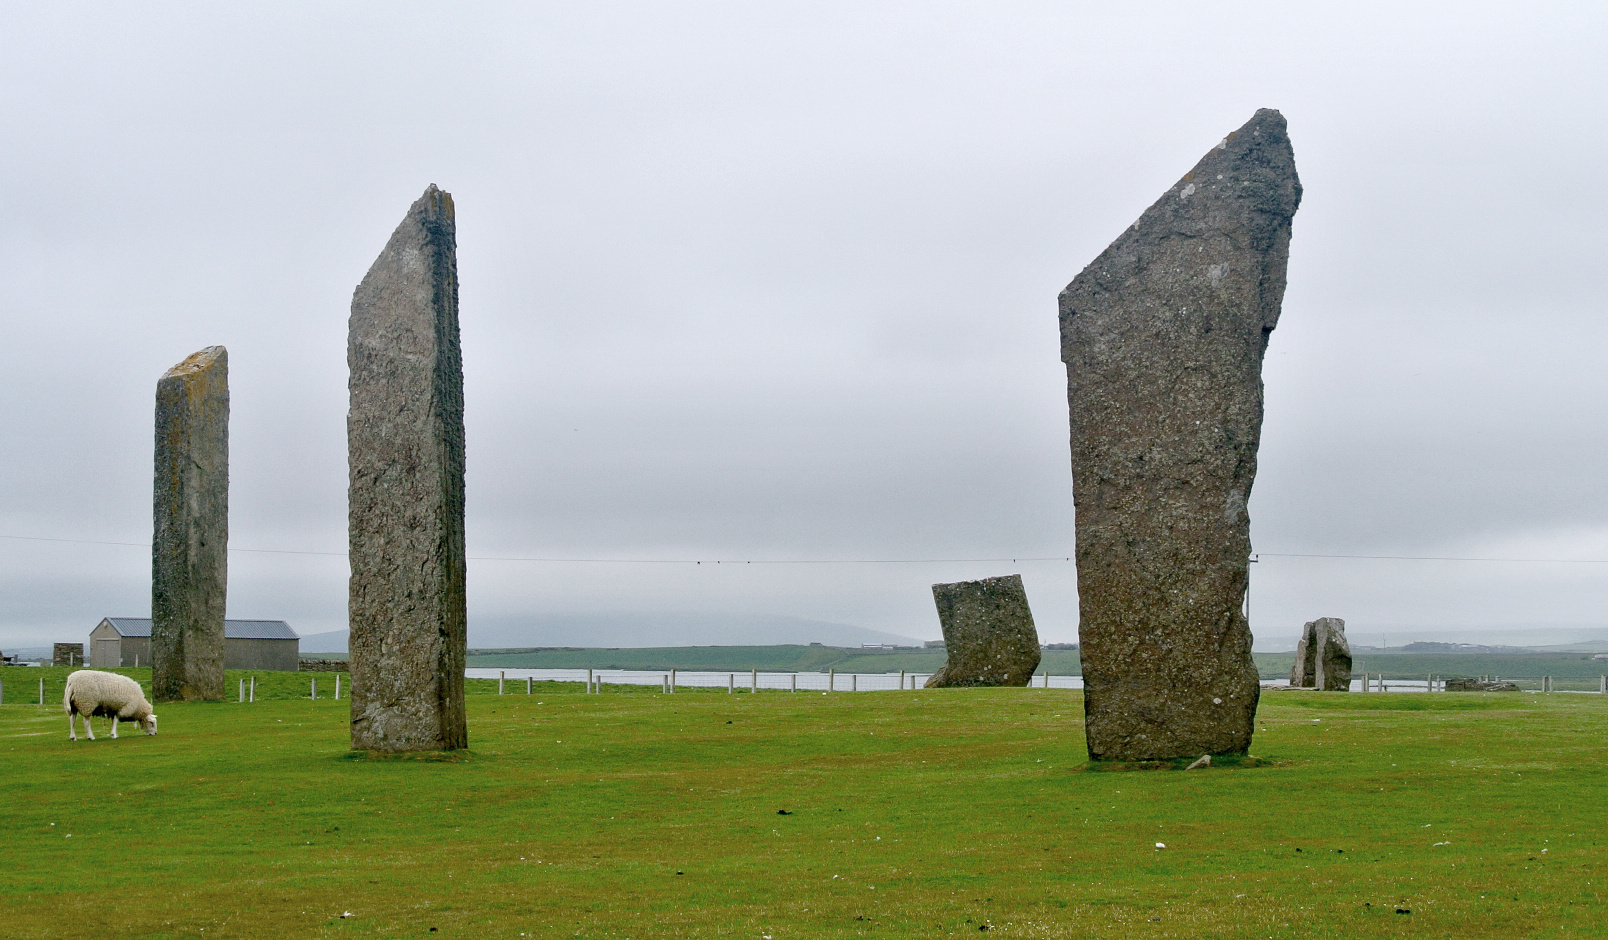 The circle of the Stones of Stenness is 32.2 x 30.6metres (106 x 100feet). Its earthen henge is 45metres (148feet) in diameter, over 7metres (23feet) wide and over 2metres (6.5feet) deep and the circumference is 141.37metres (464feet). Image credit: Wikimedia Commons.